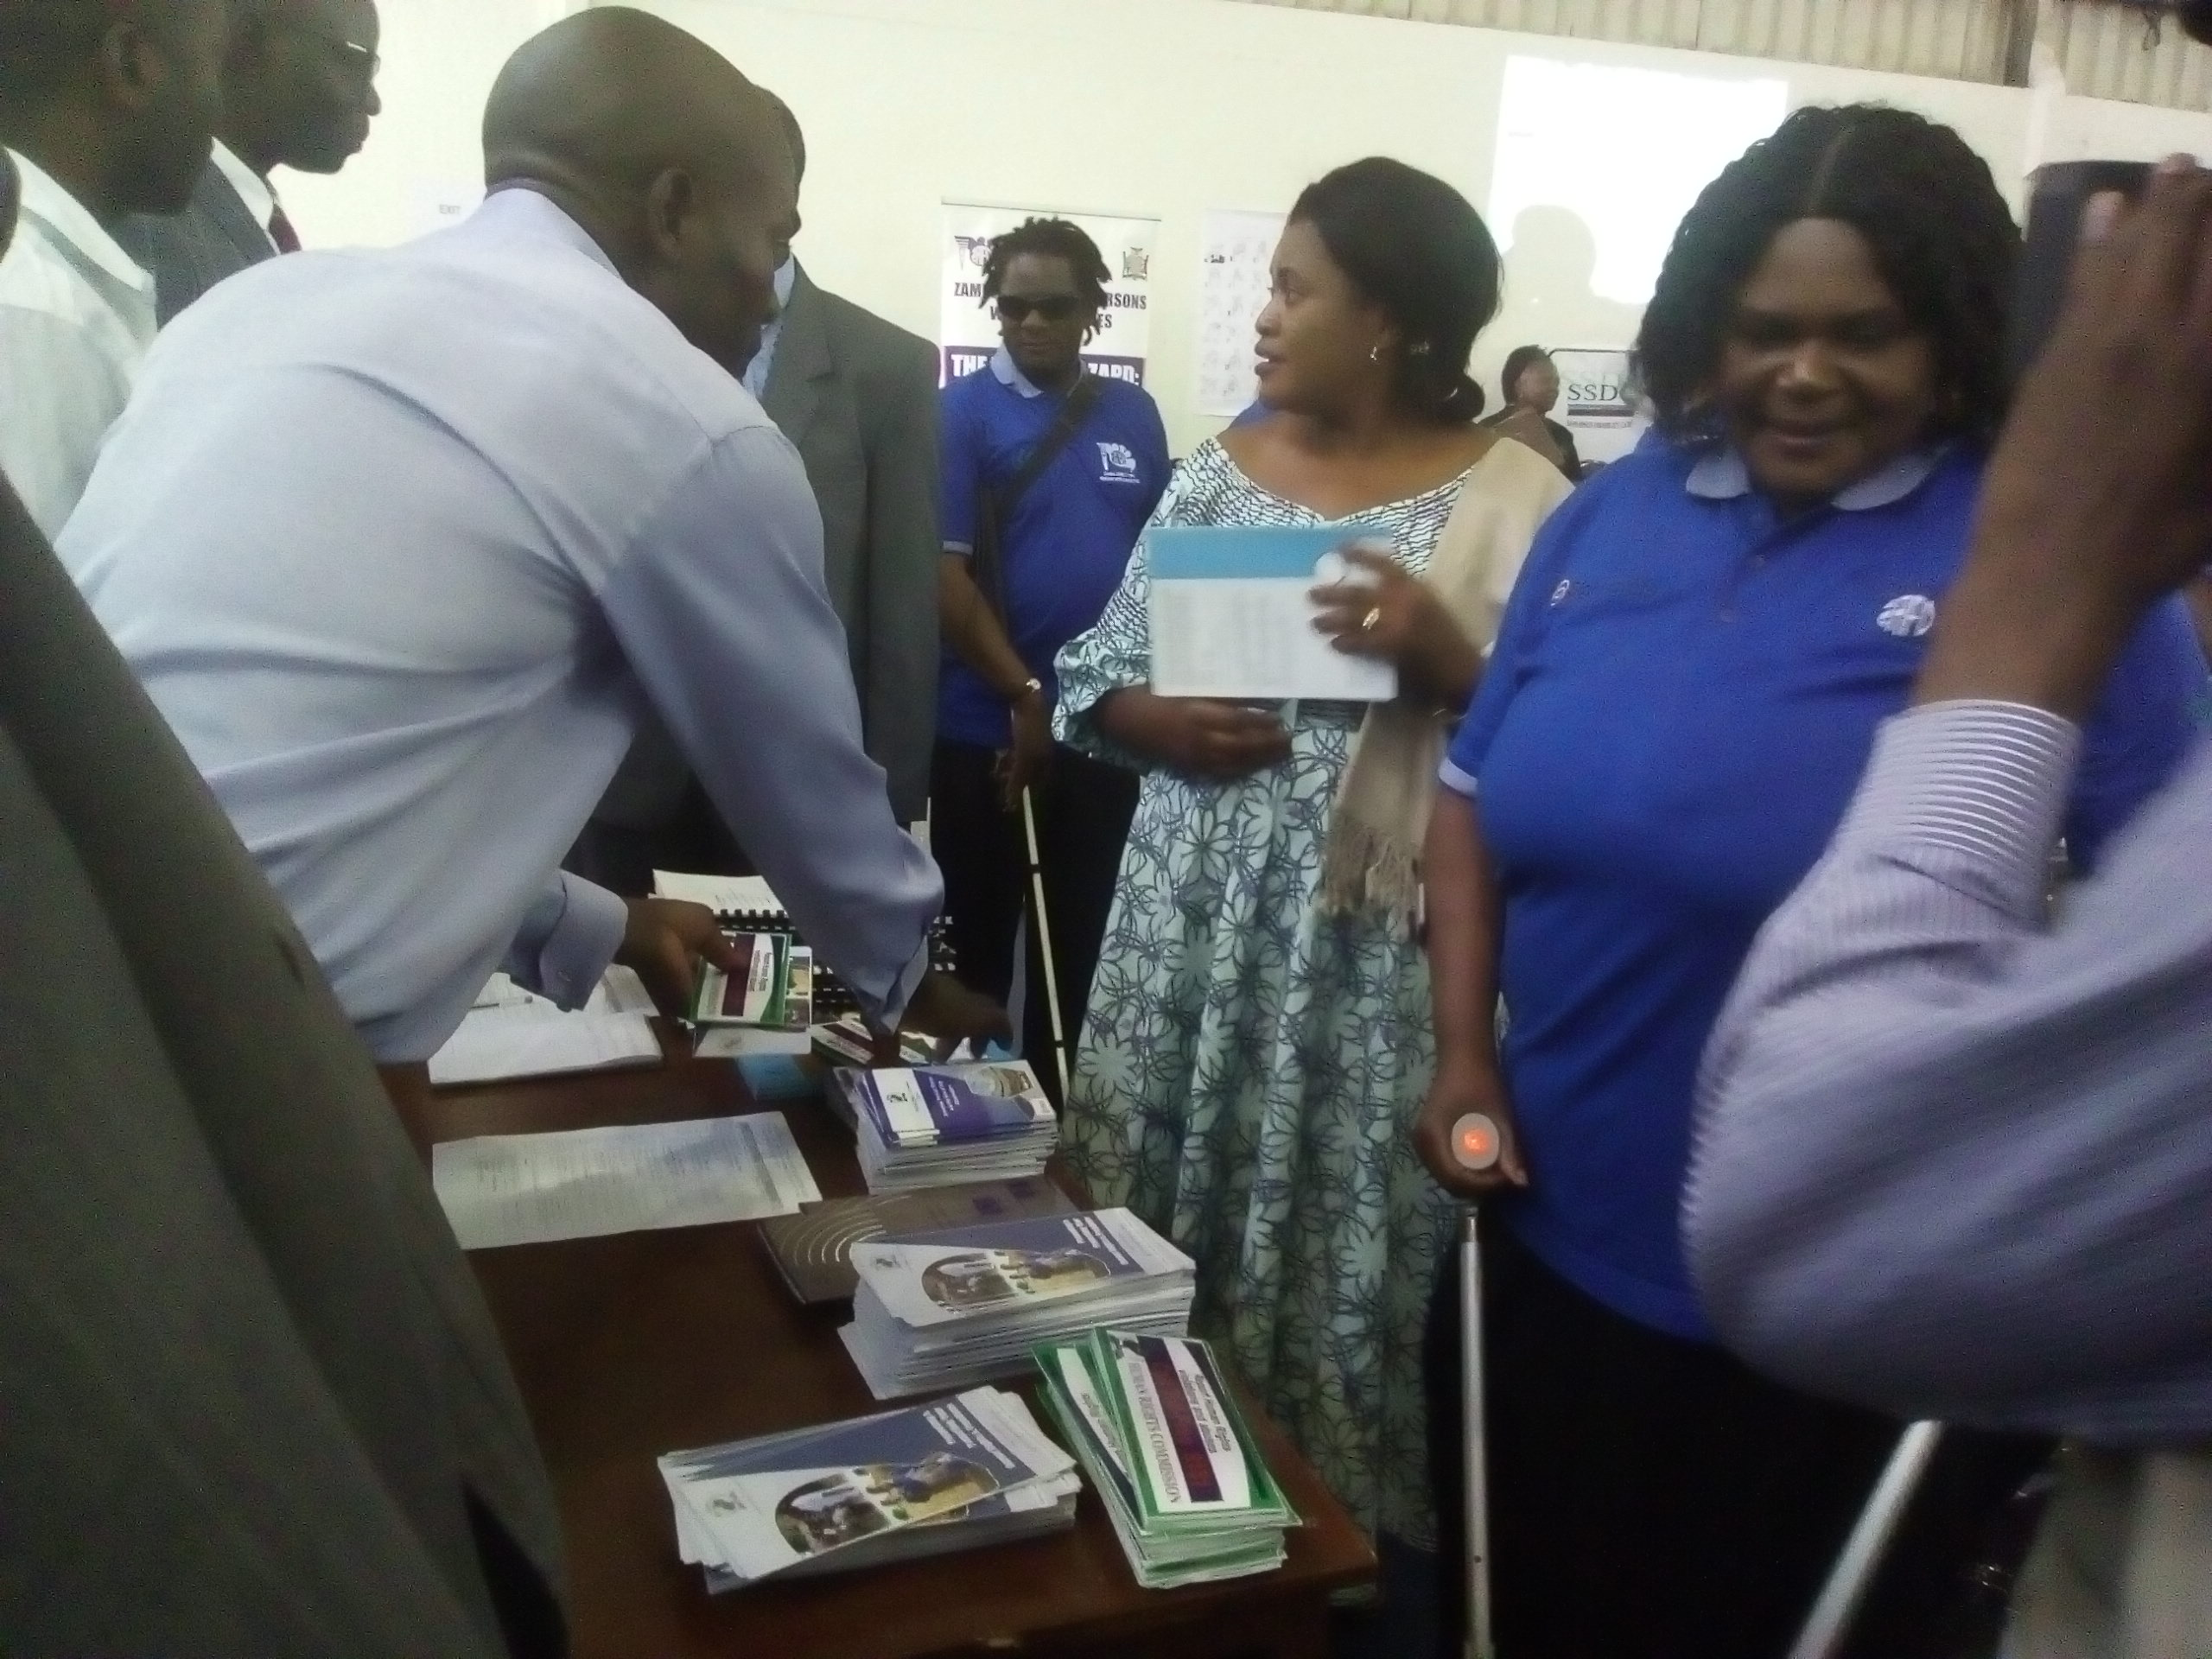 Minister and BoardZapd Member at Exhibitors Stand